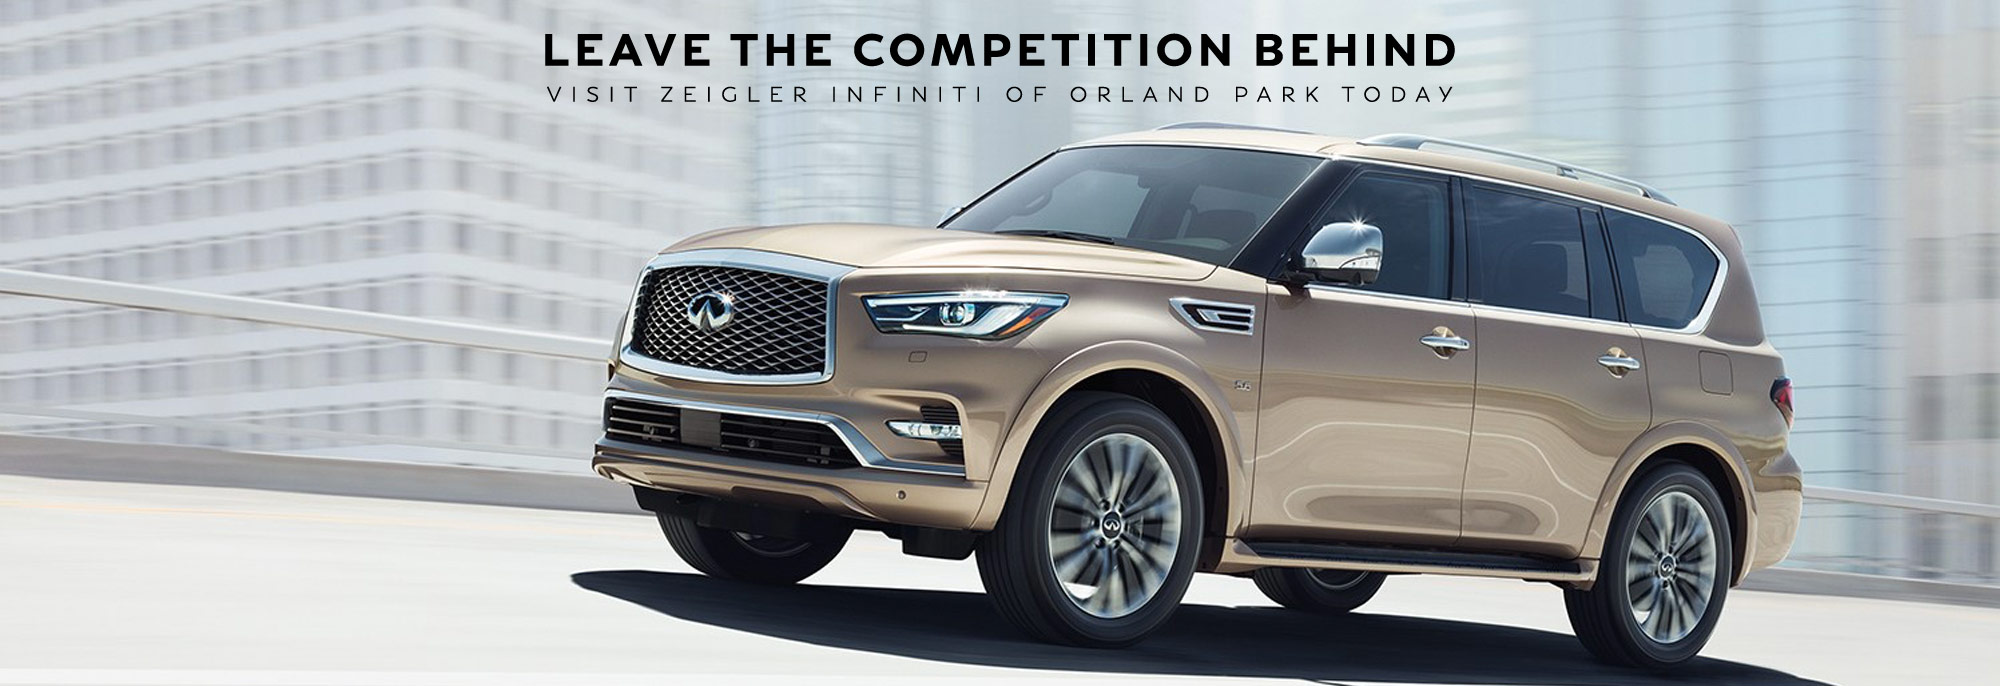 INFINITI DEALER QX80 VS MERCEDES-BENZ GLS450, CADILLAC ESCALADE AND LEXUS LX 570